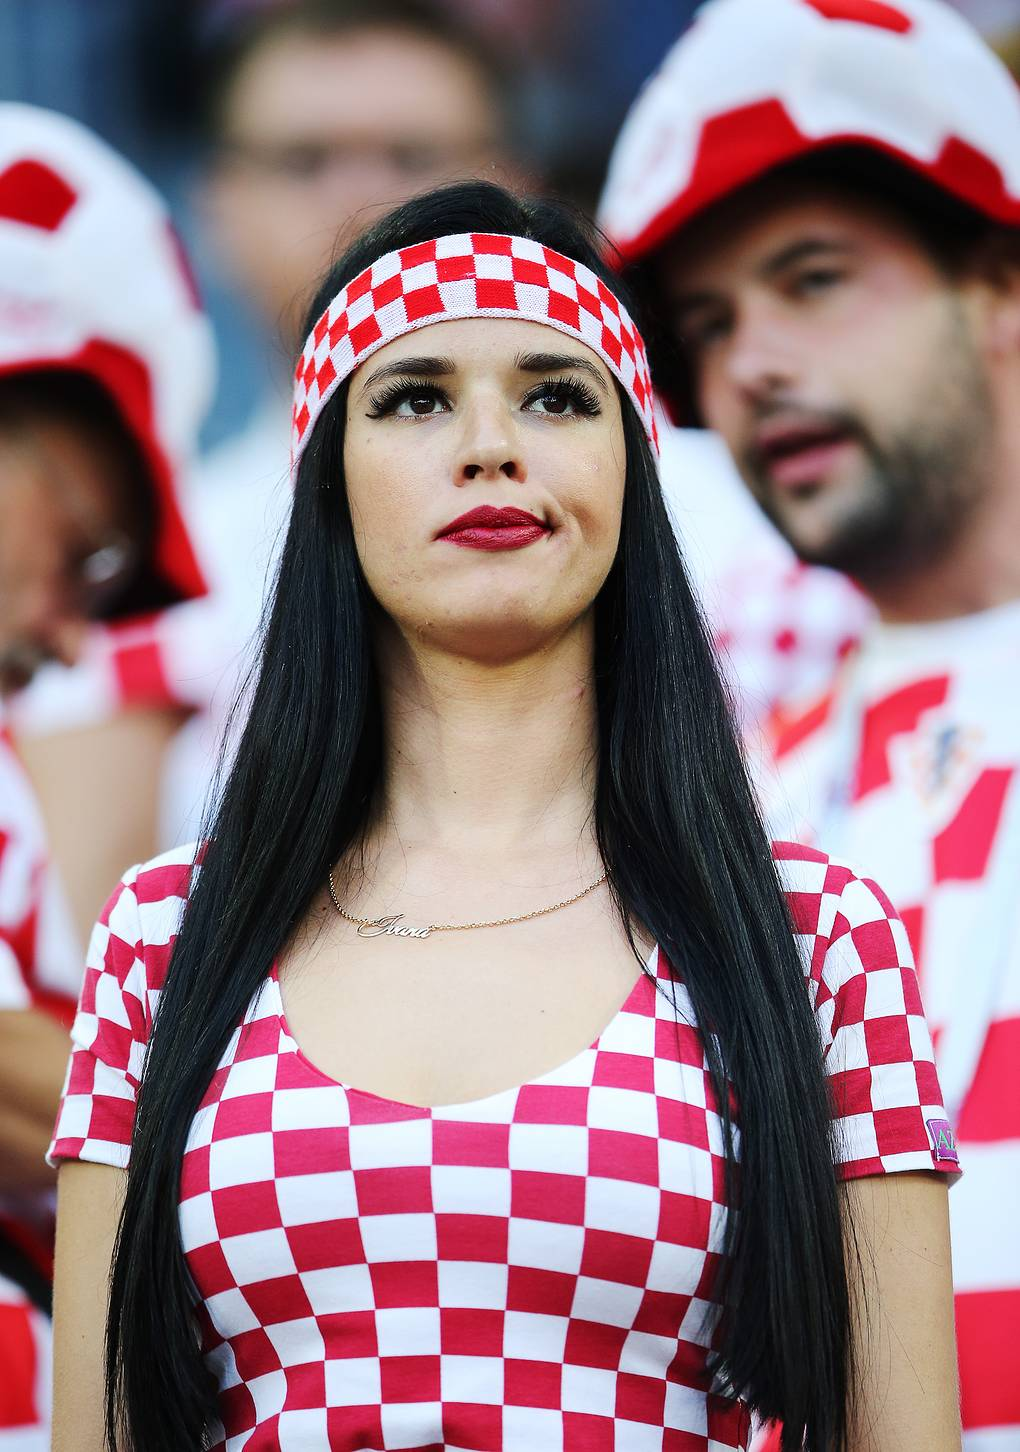 Radiant female fans at FIFA World Cup - Sport - TASS